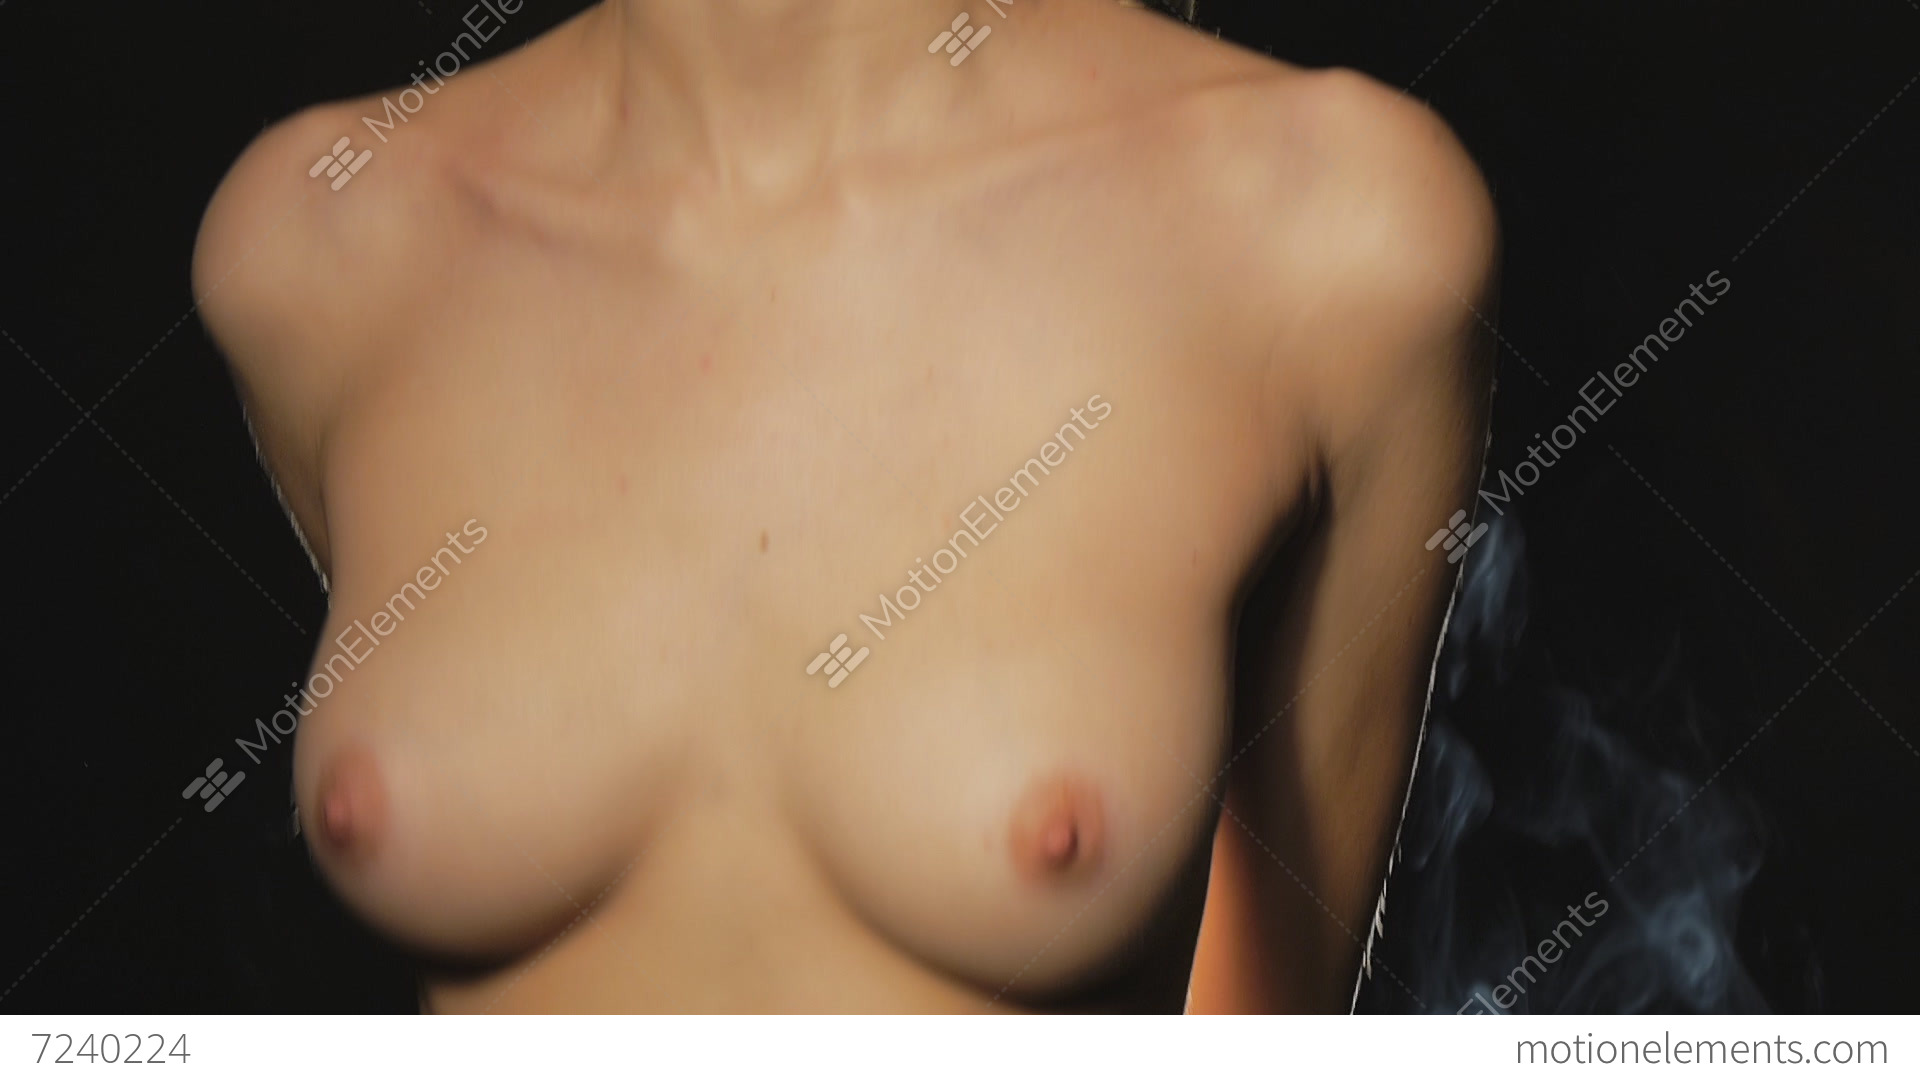 breast naked picture